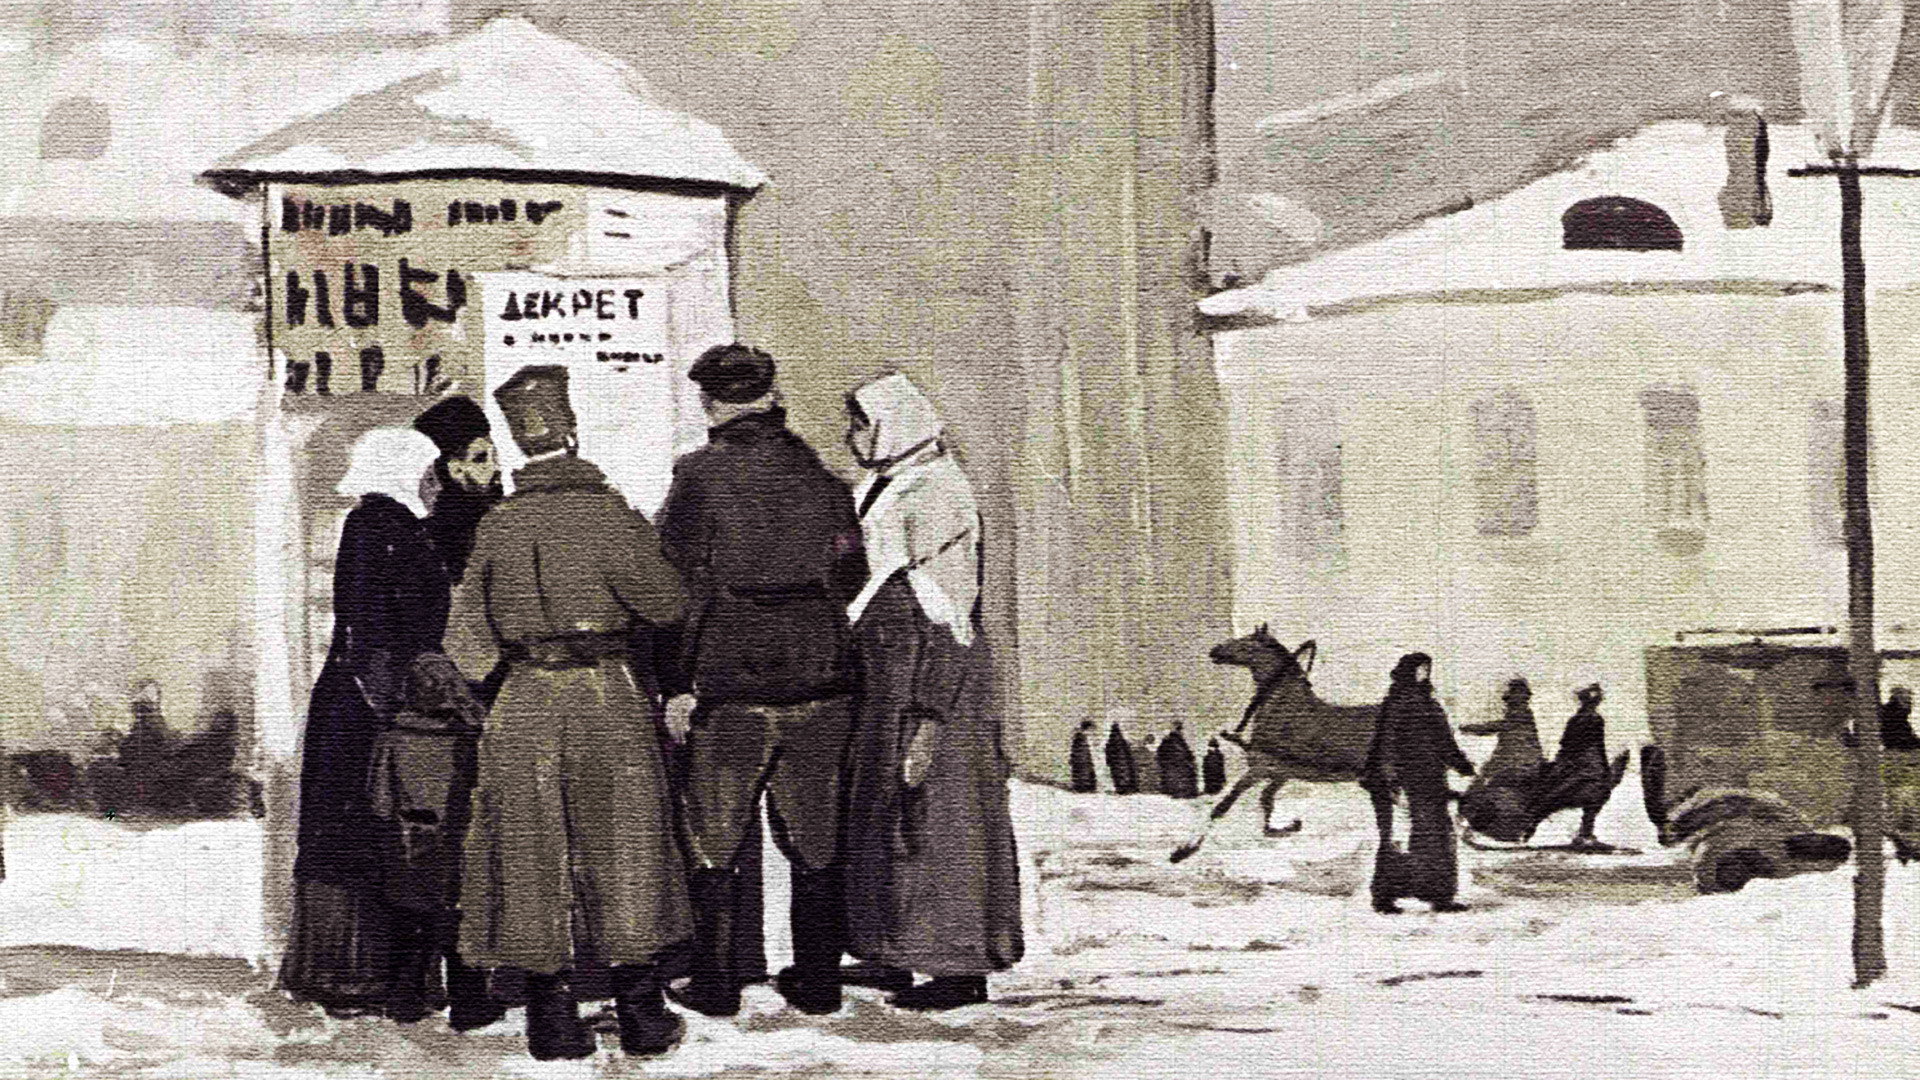 People gathered to read one of the decrees issued by the Bolsheviks, painting.